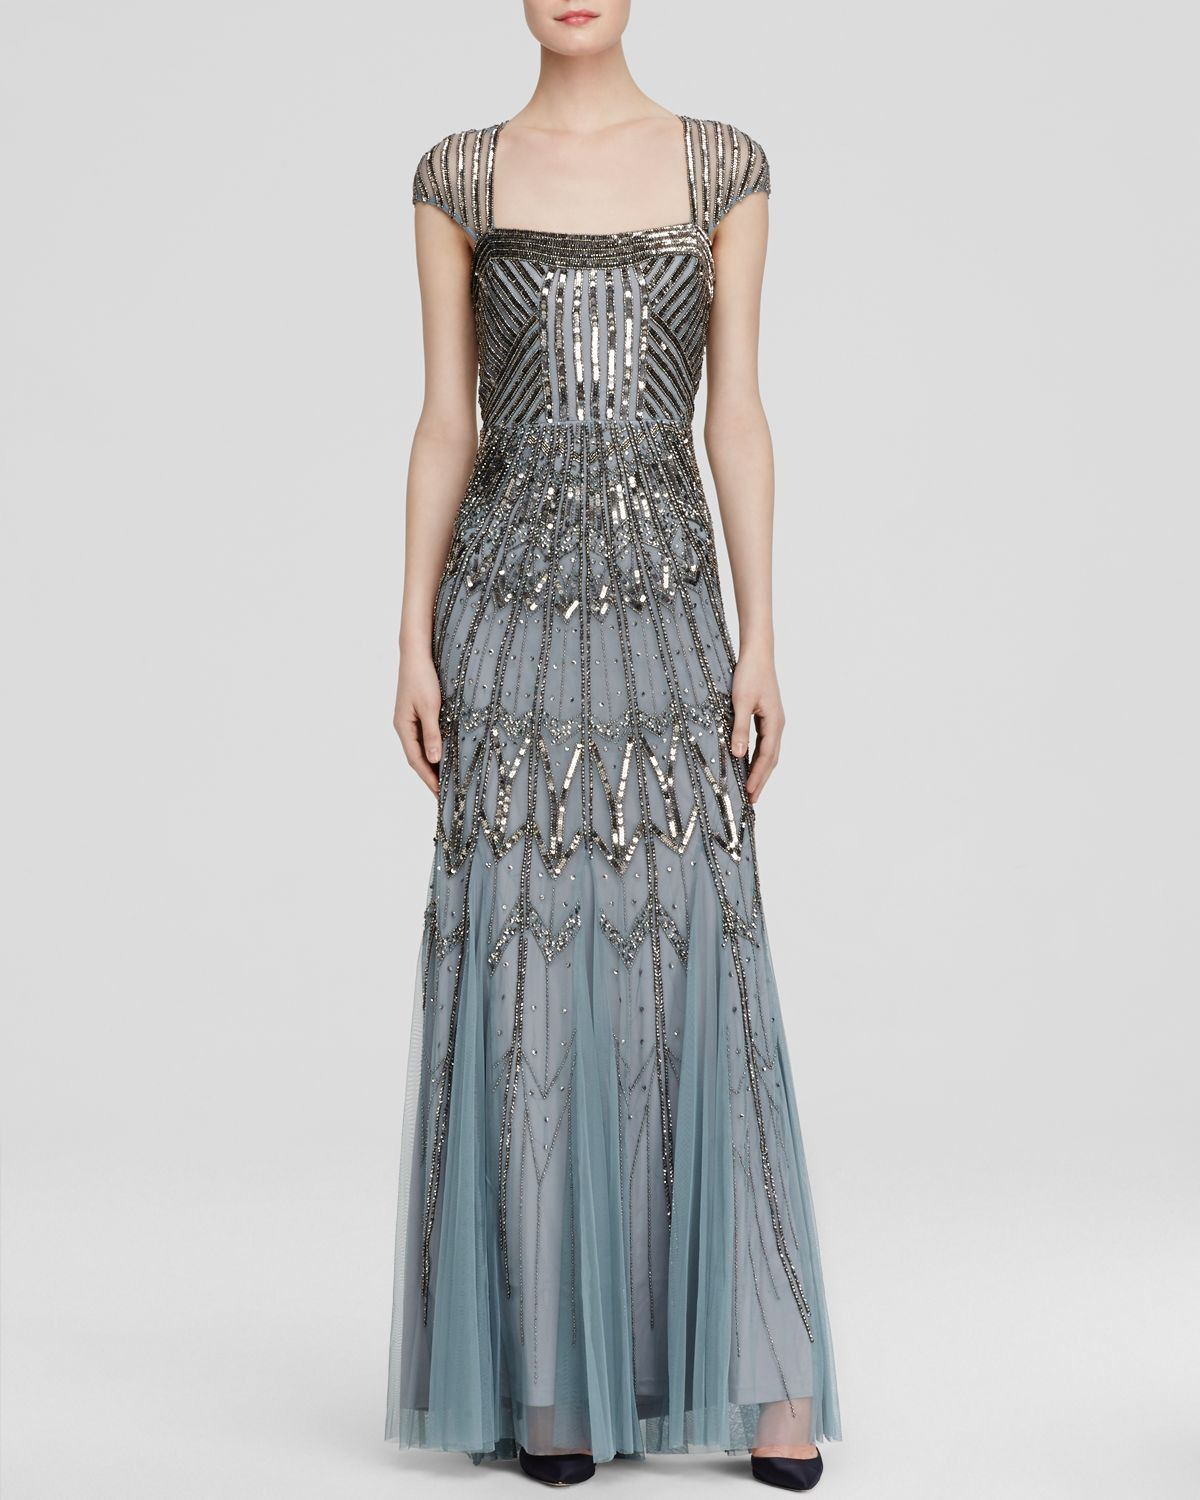 Estadio corazón Alcalde  Adrianna Papell Cap Sleeve Beaded Gown - Slate | Art deco dress, Gowns,  Inspired dress